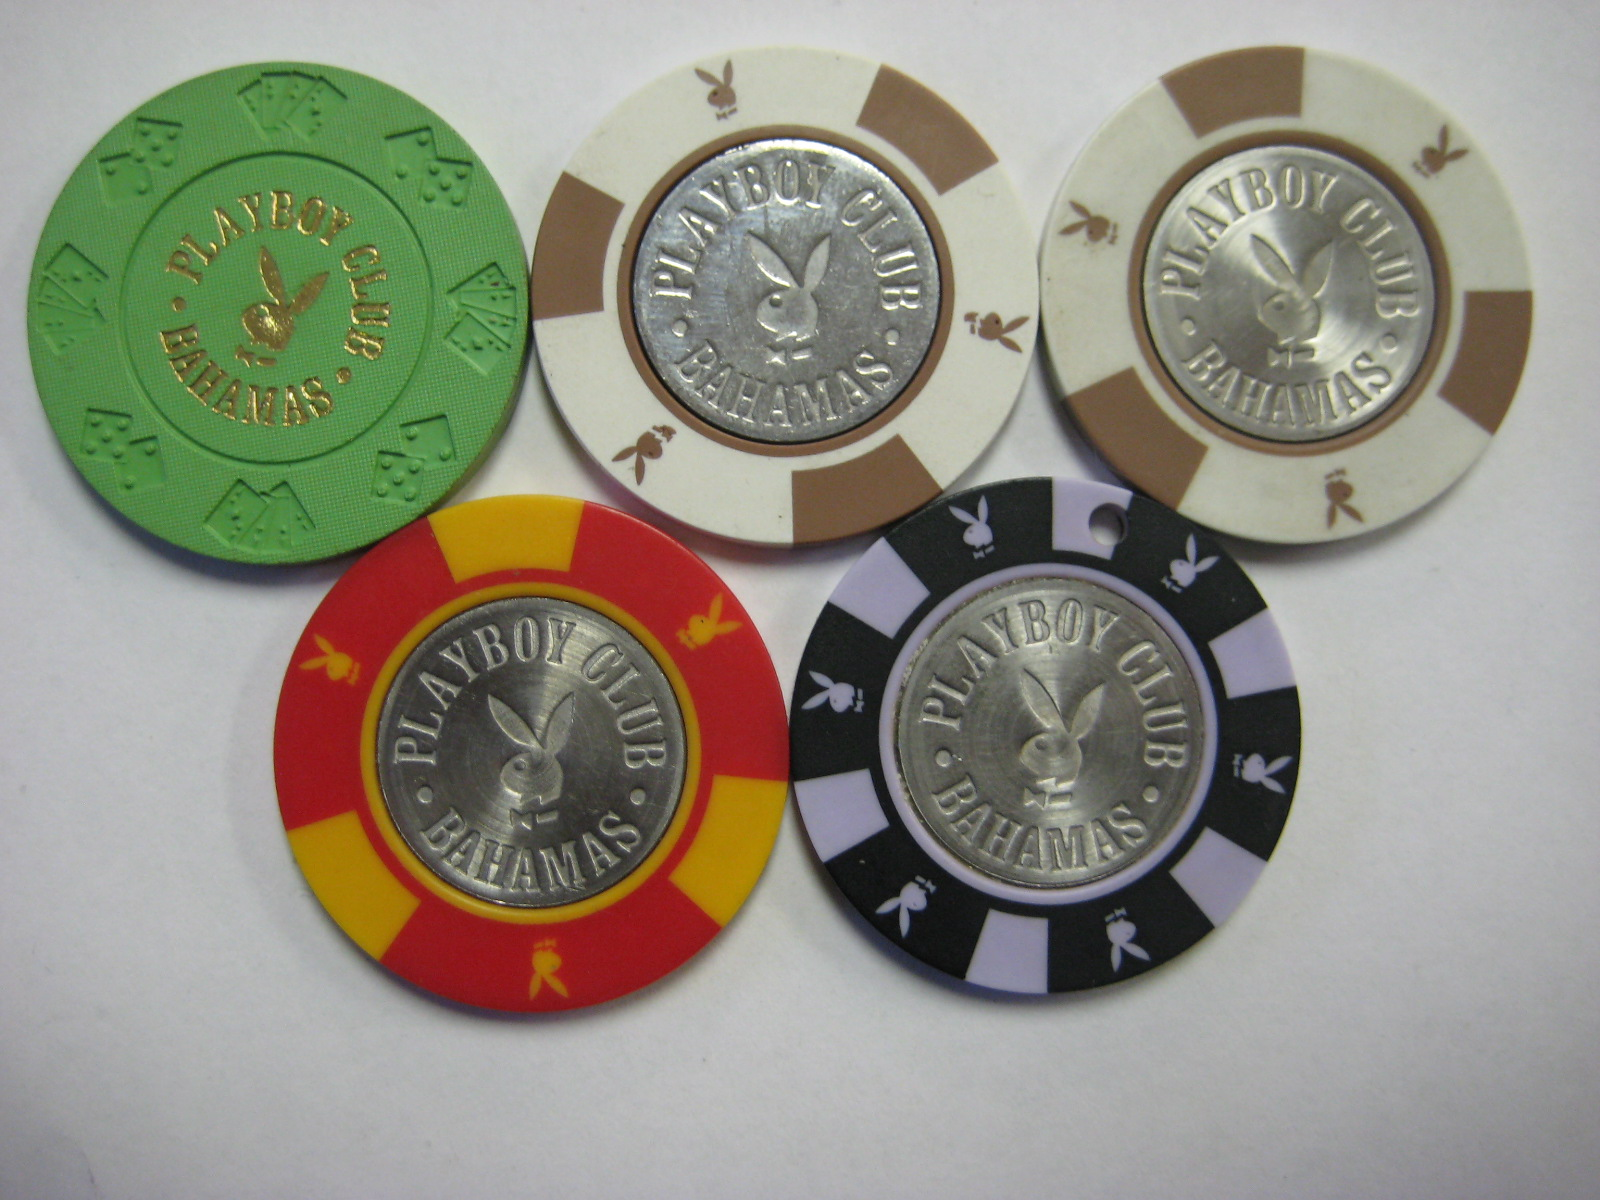 Bahamas Playboy Club Casino Chips